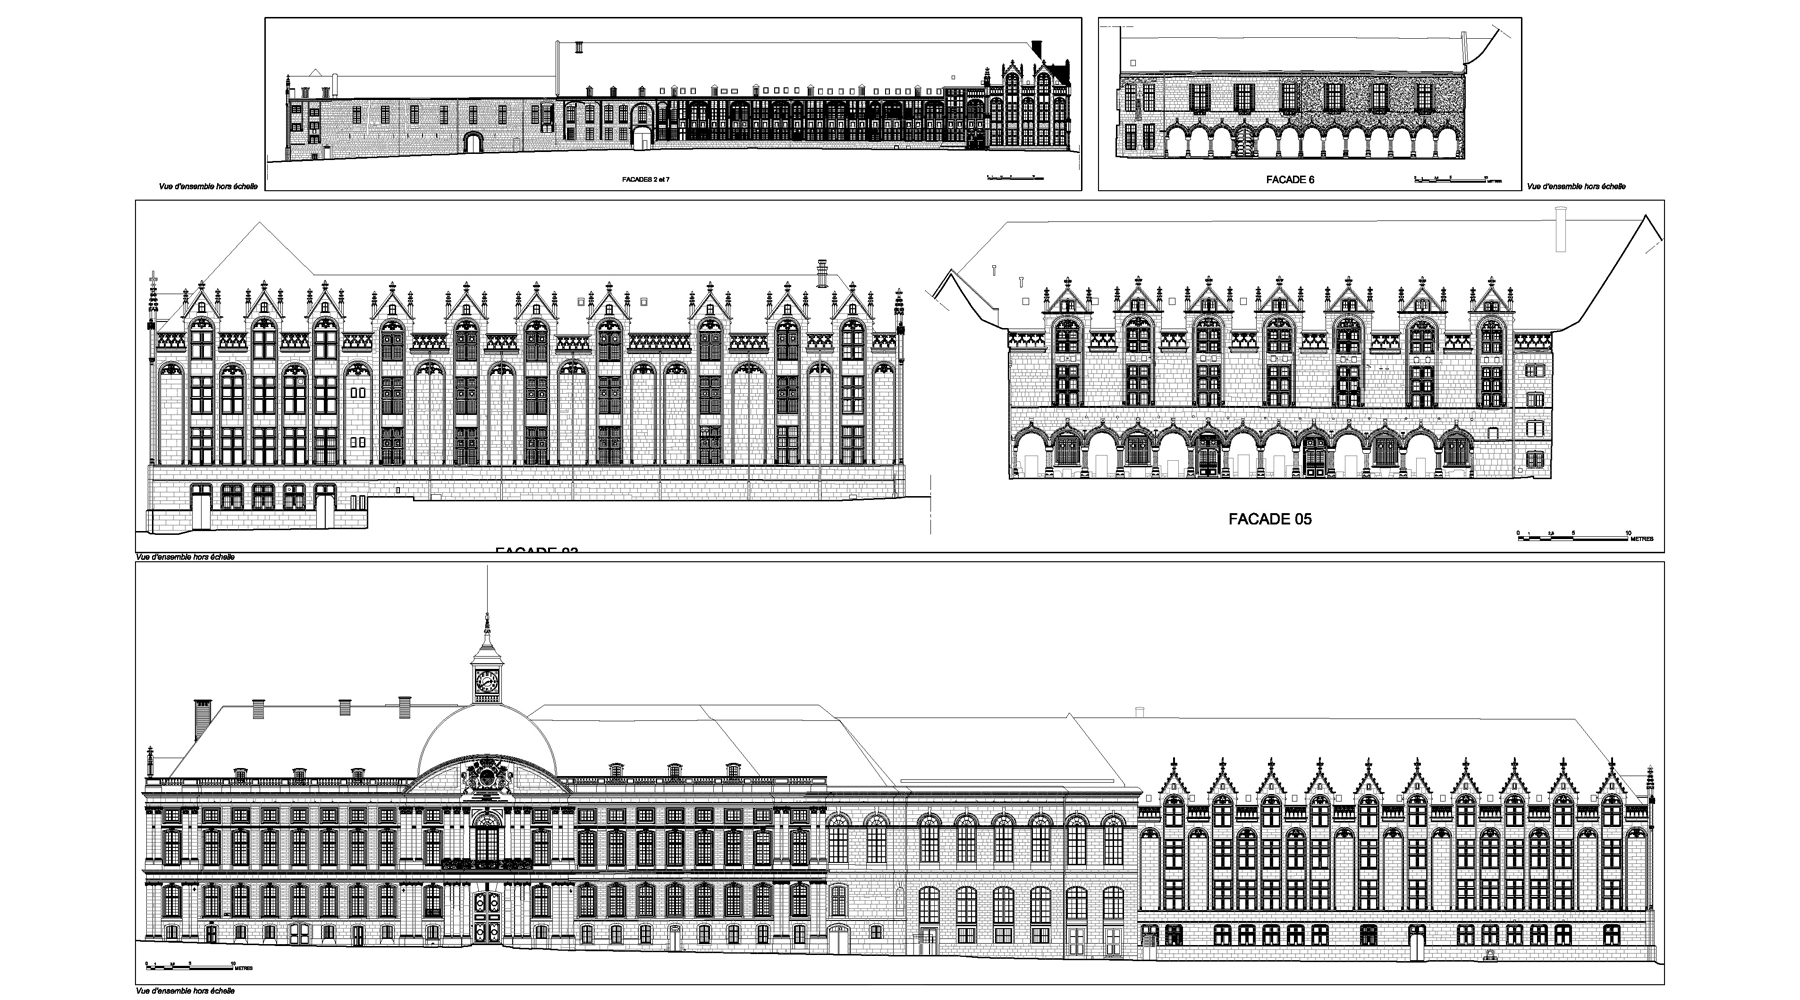 Palais de Justice, Liège - Elevations